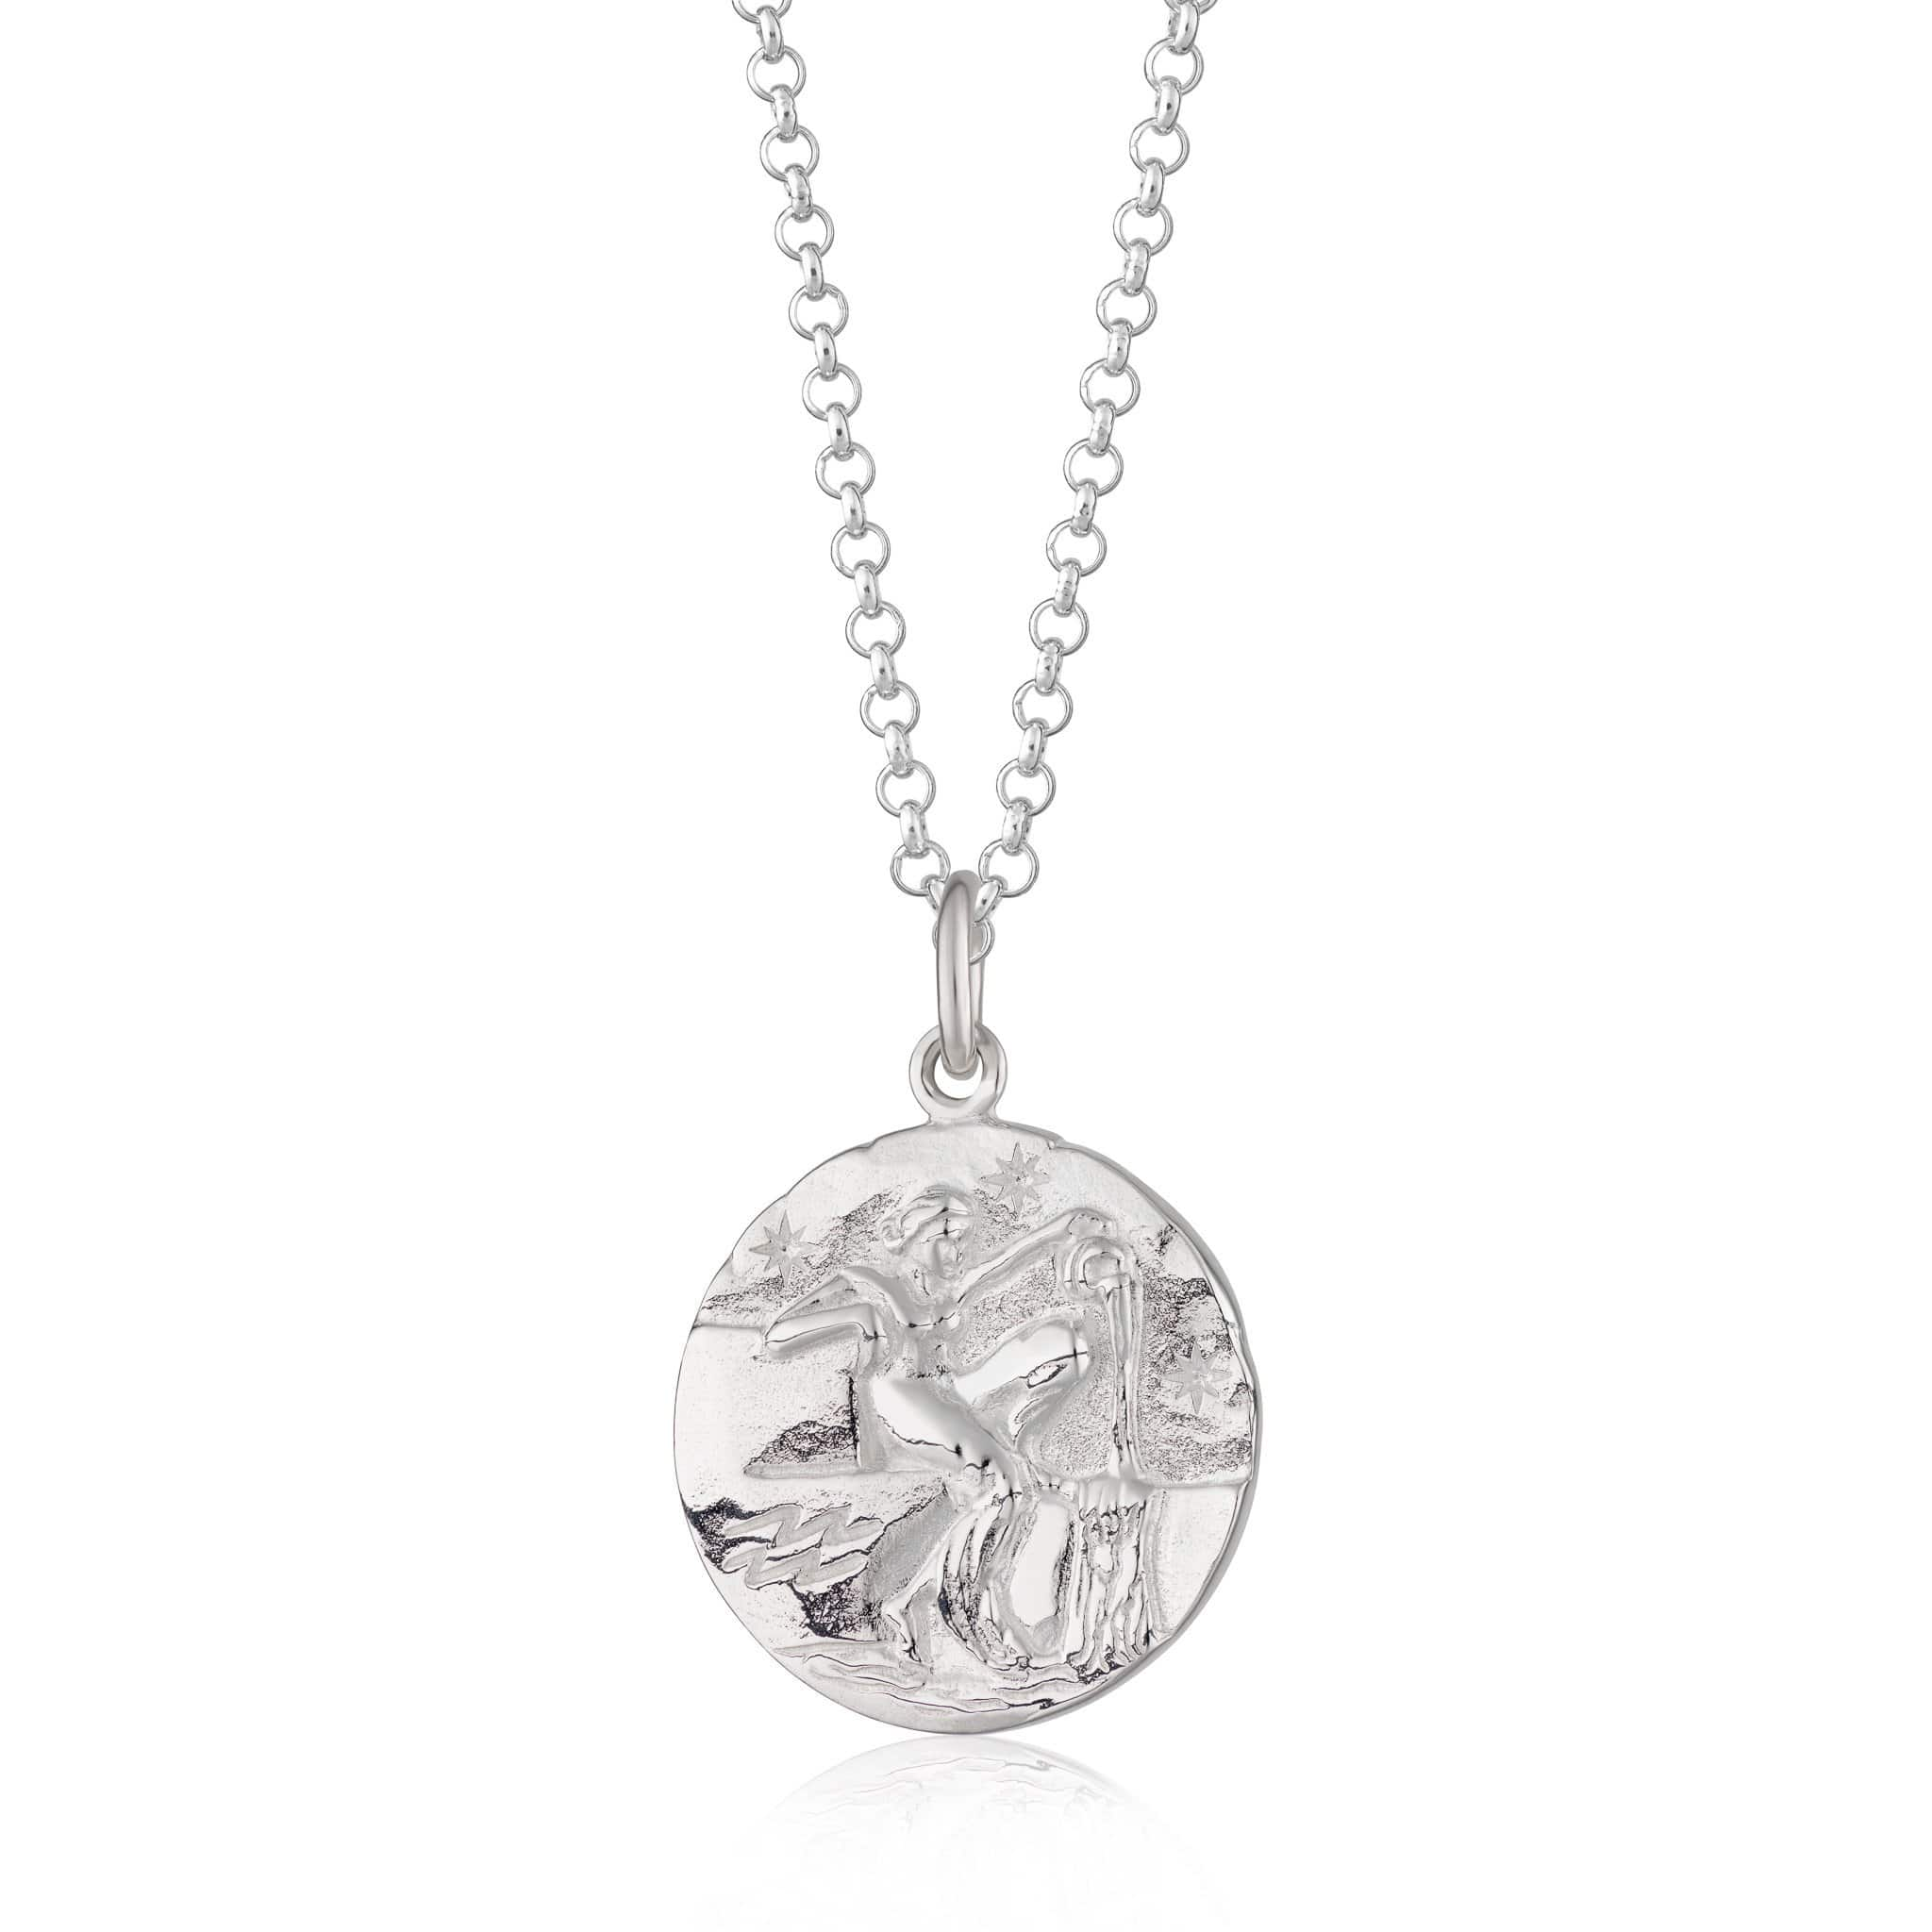 Personalised Silver Aquarius Zodiac Necklace - Lily Charmed